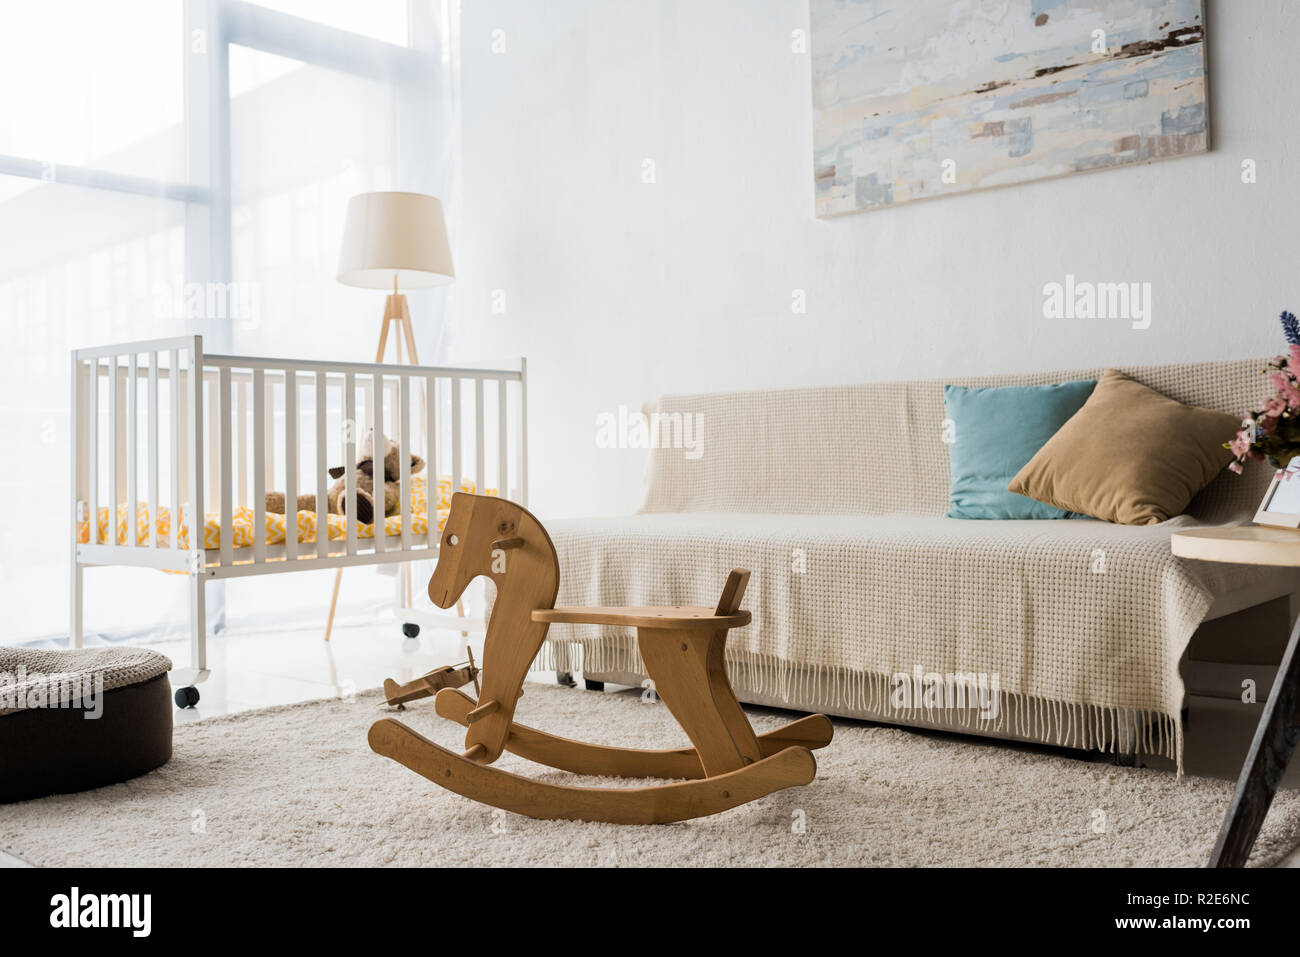 modern interior design of nursery room with crib and rocking horse chair - Stock Image